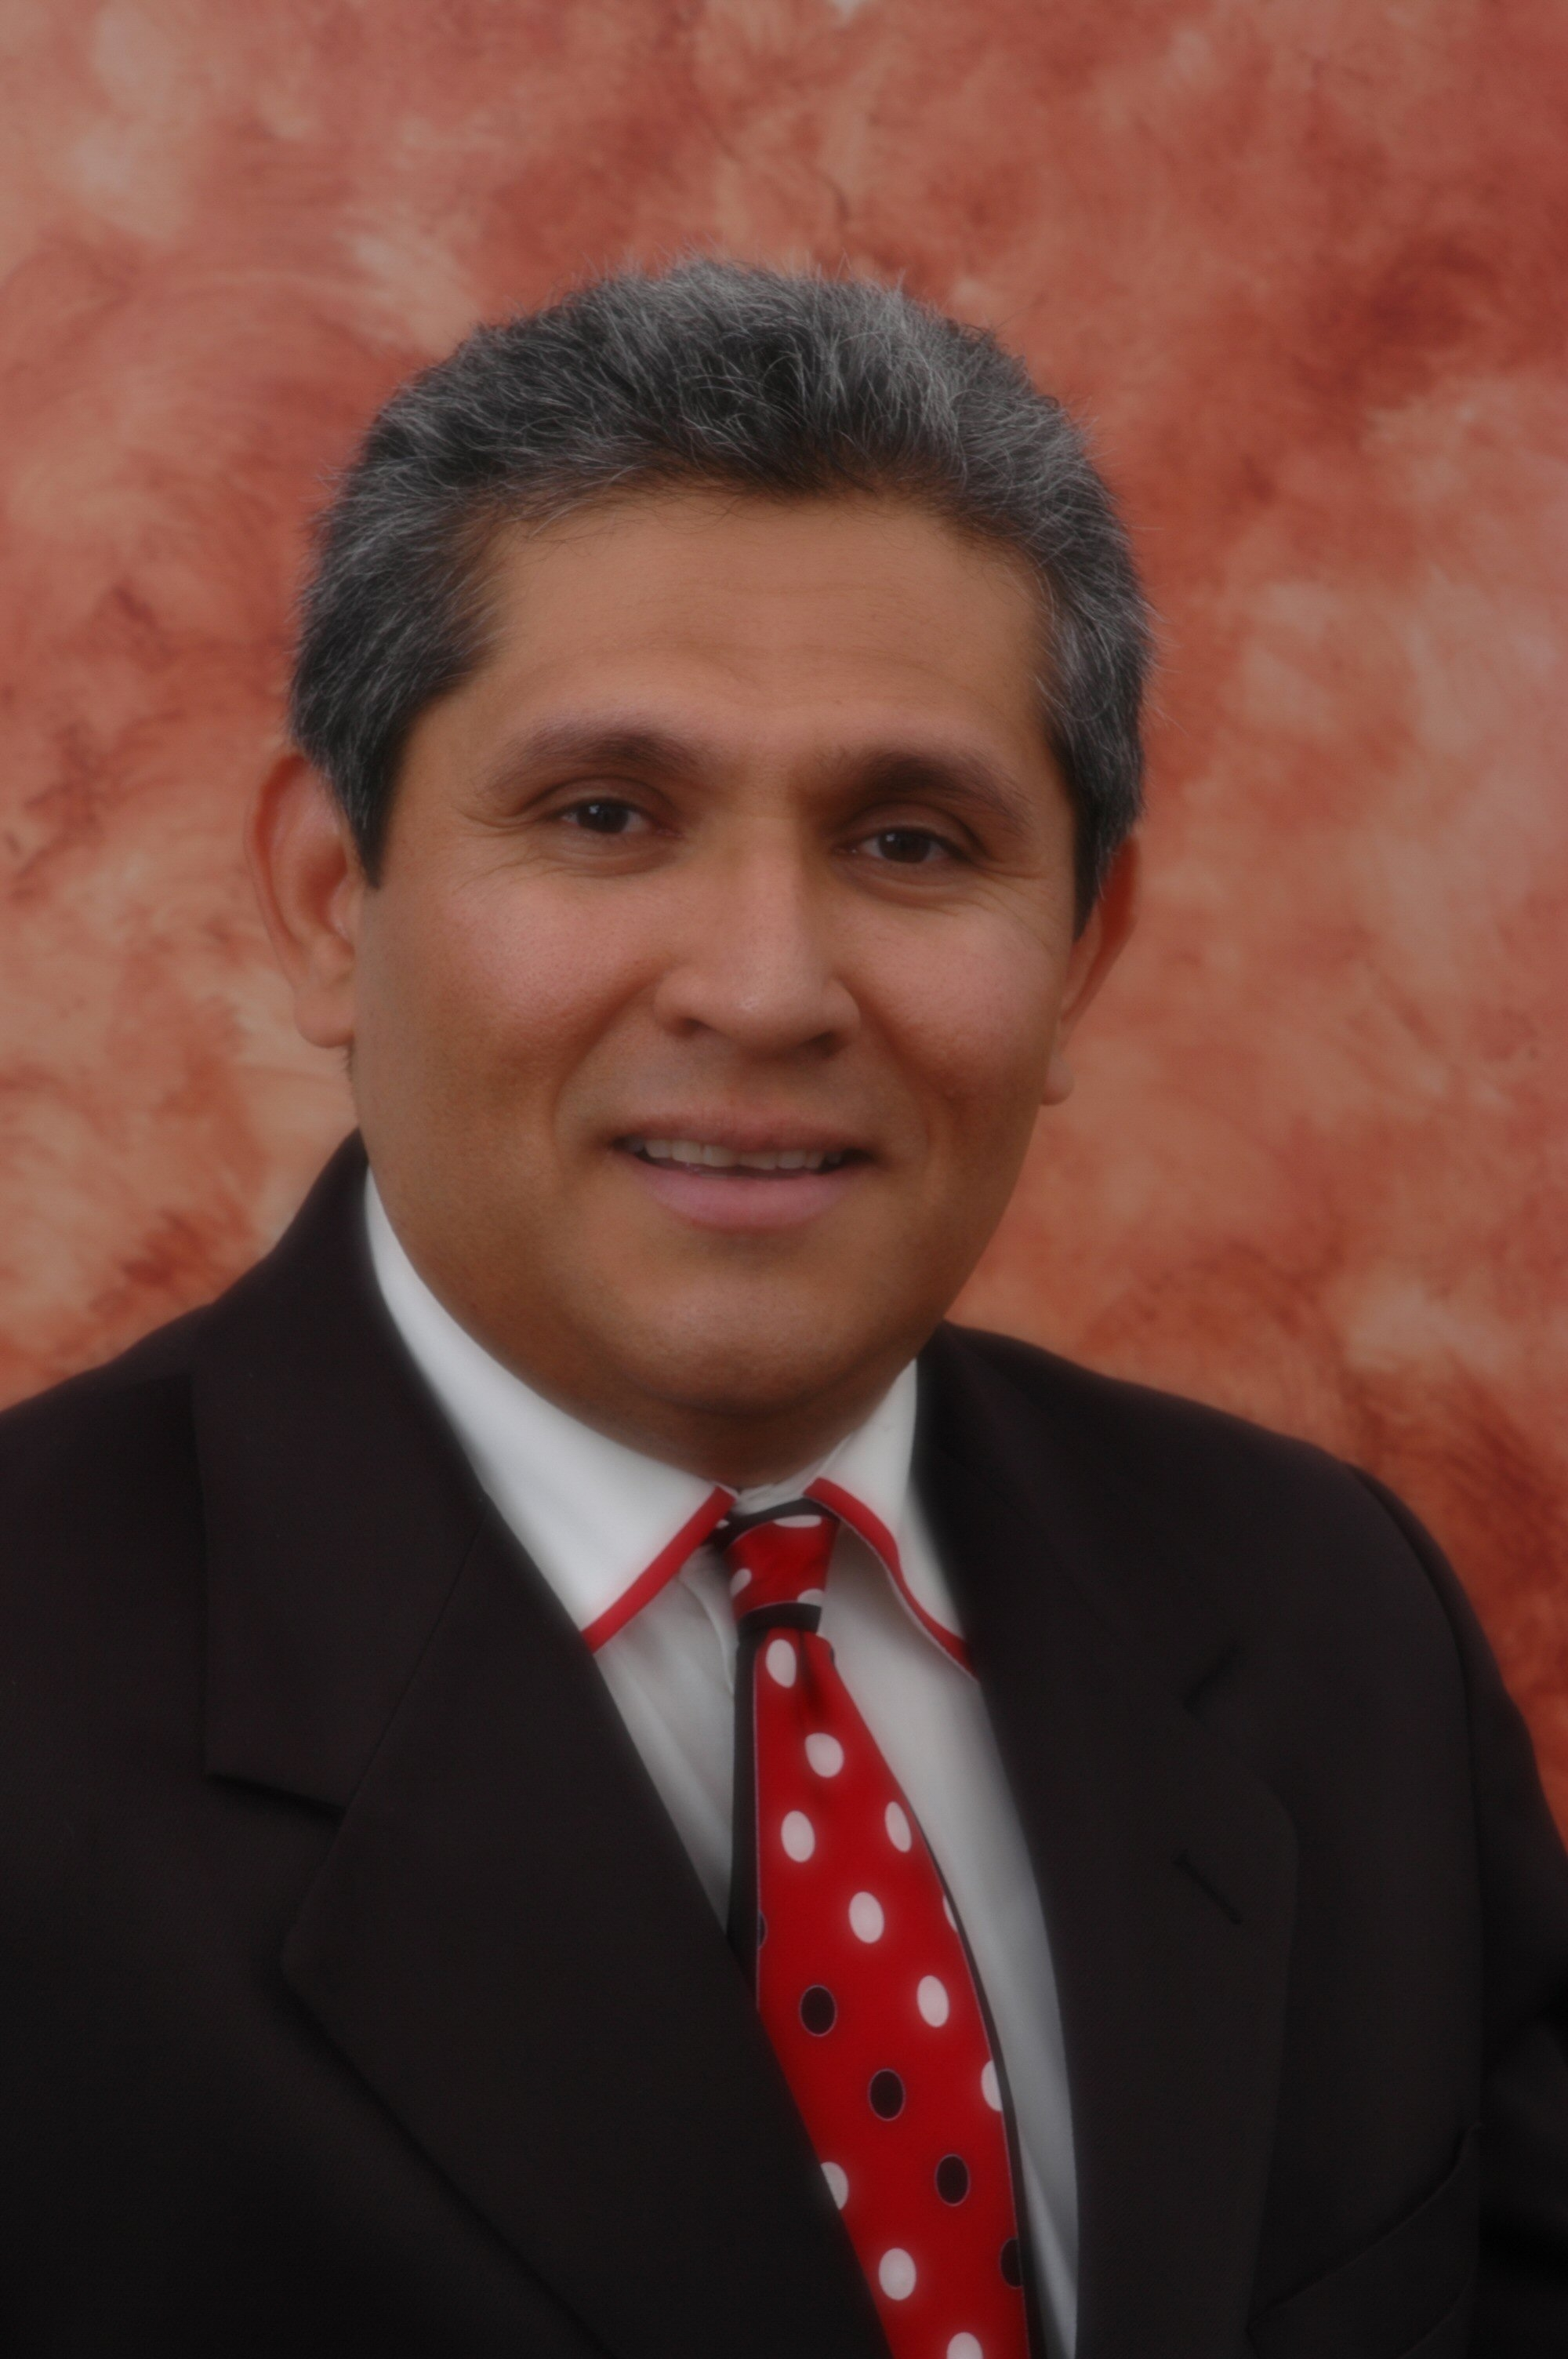 Byron Guillermo